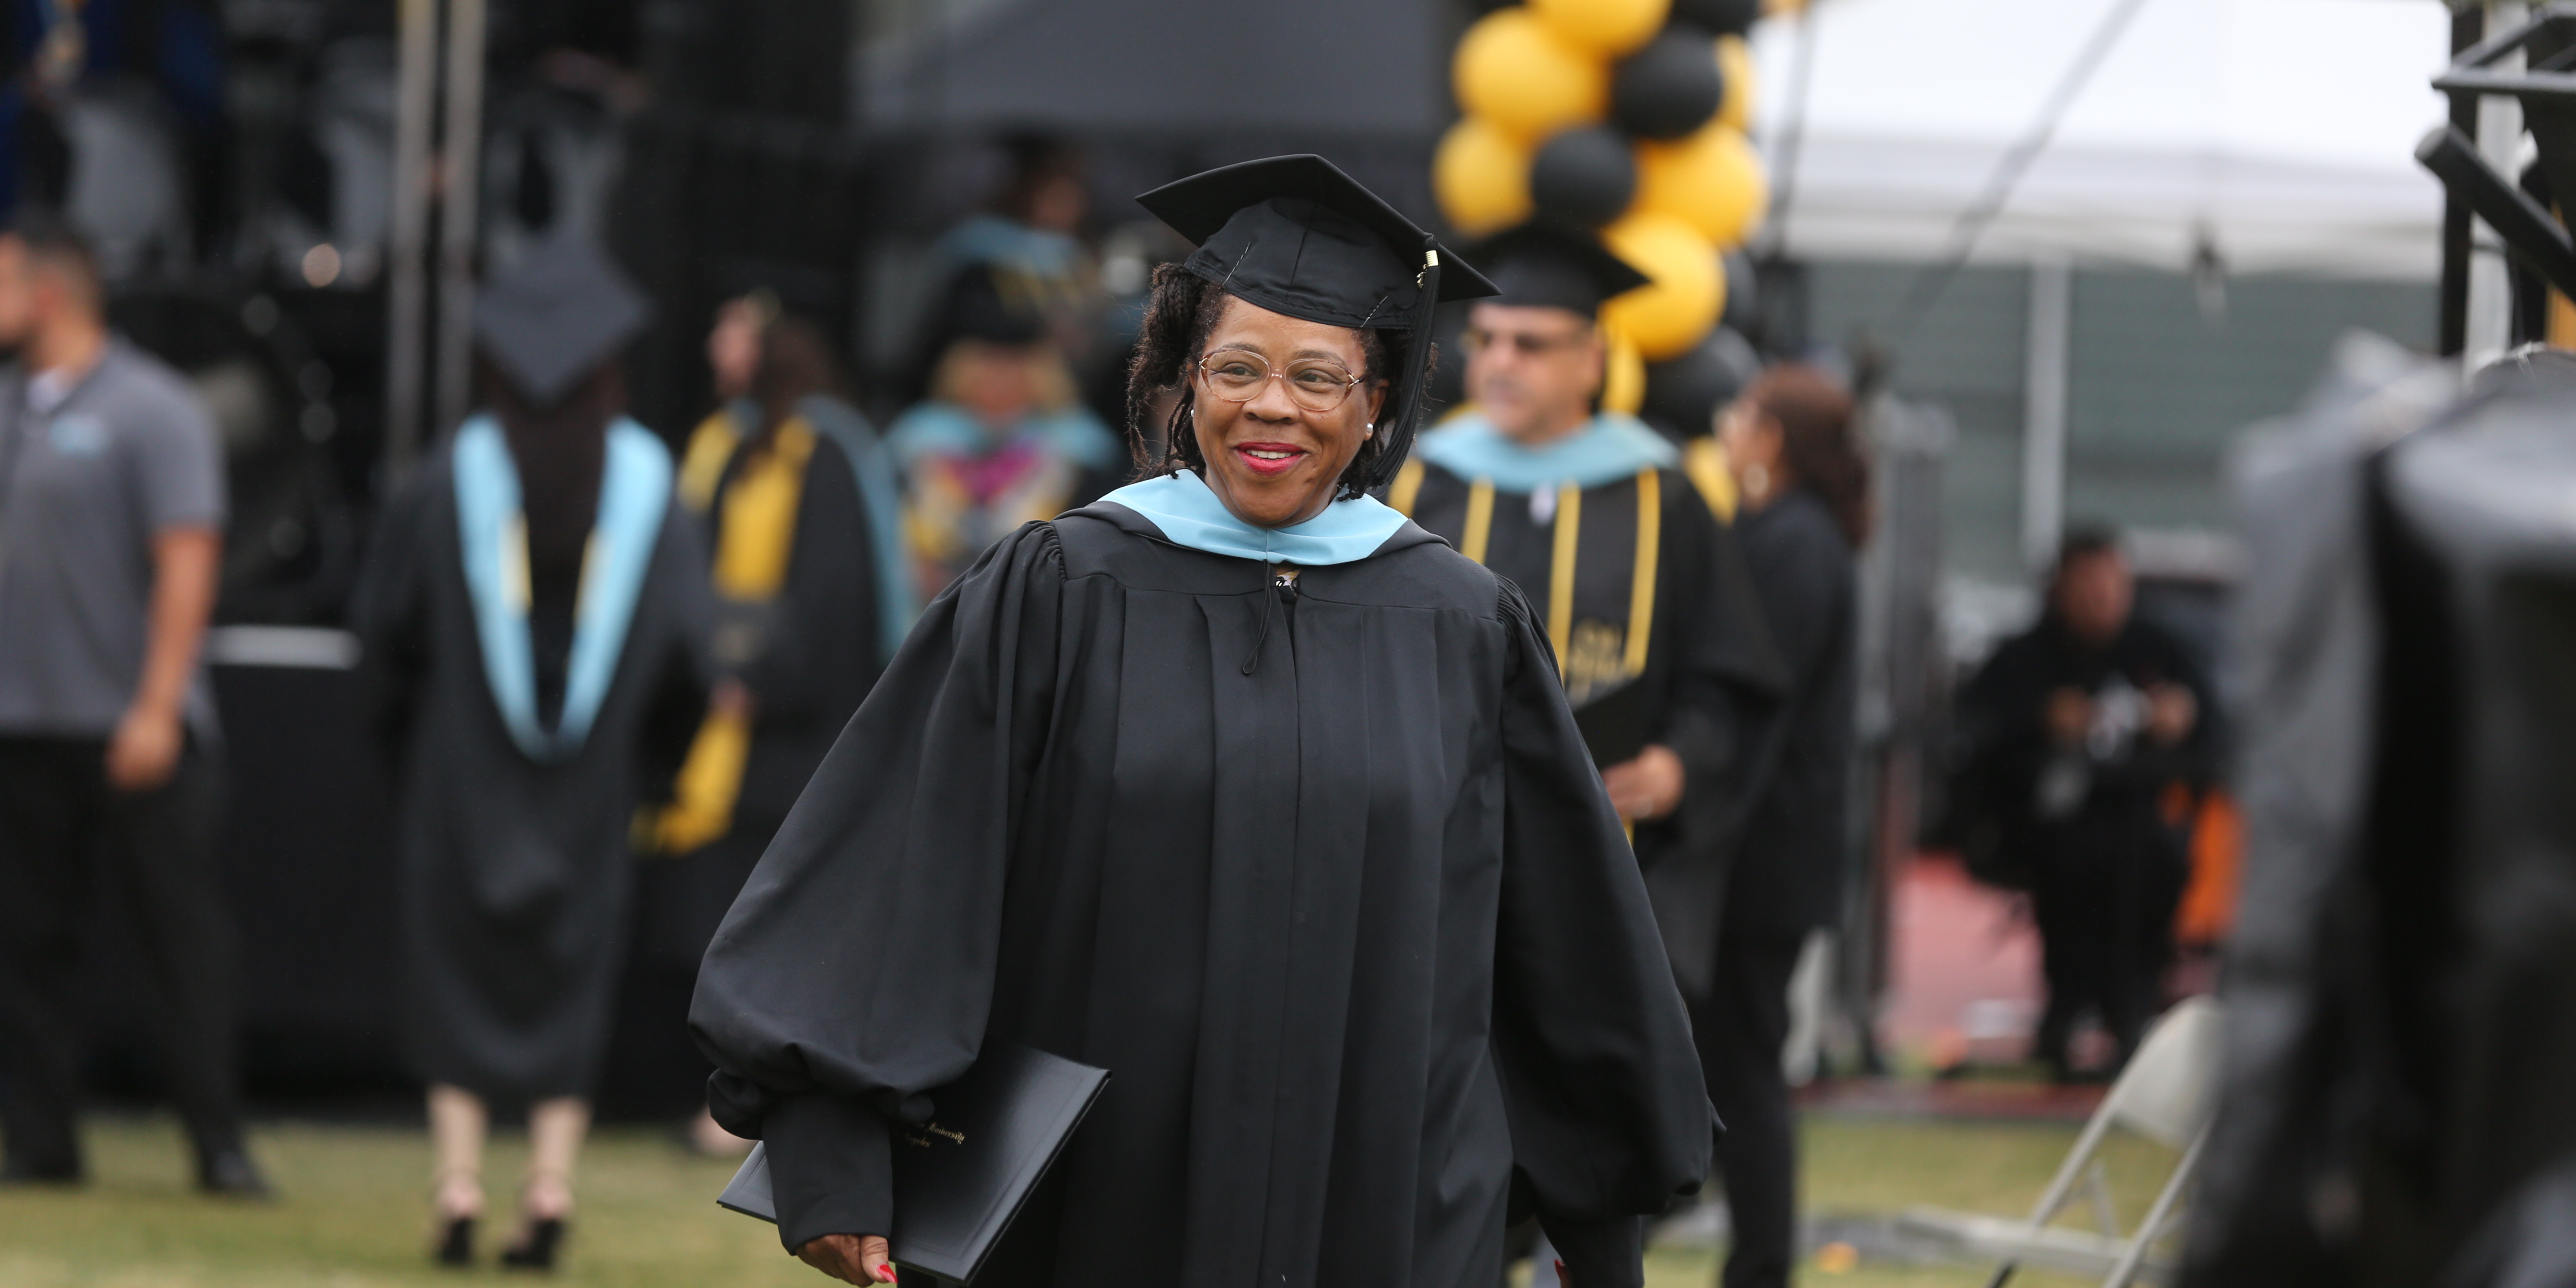 A doctoral student wears a tam, gown, and hood and carries a diploma at commemencement